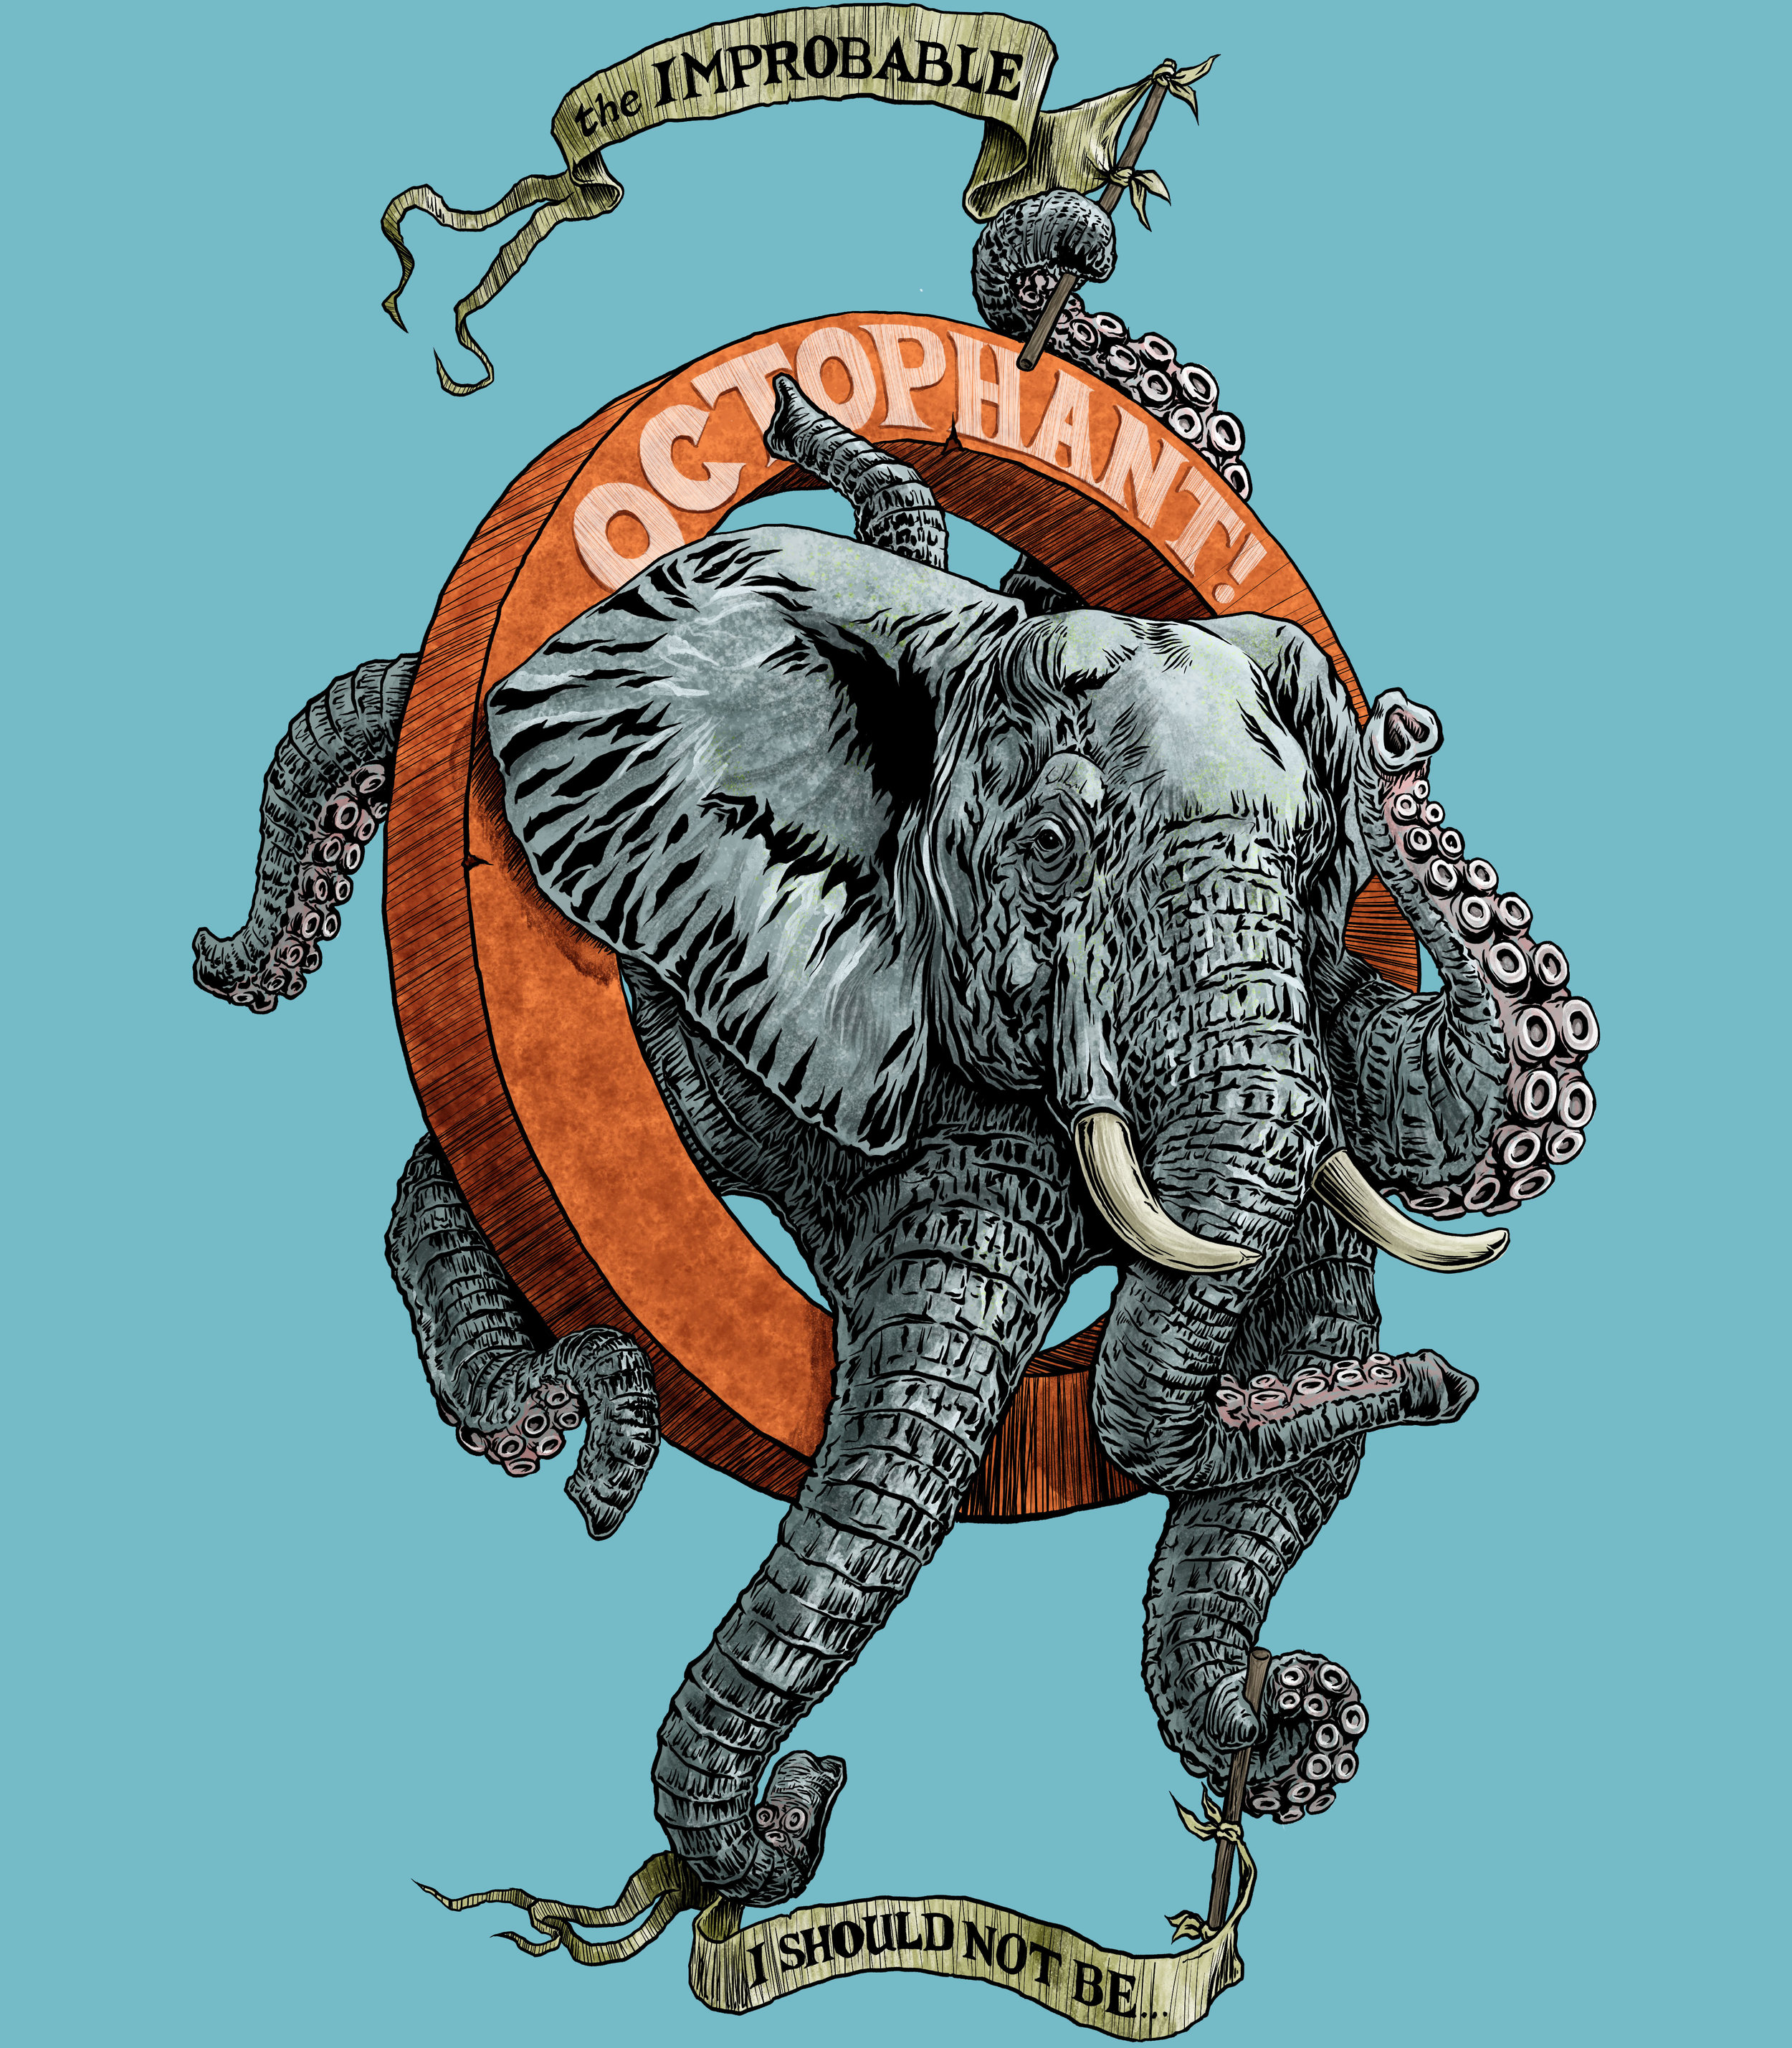 The Impossible Octophant